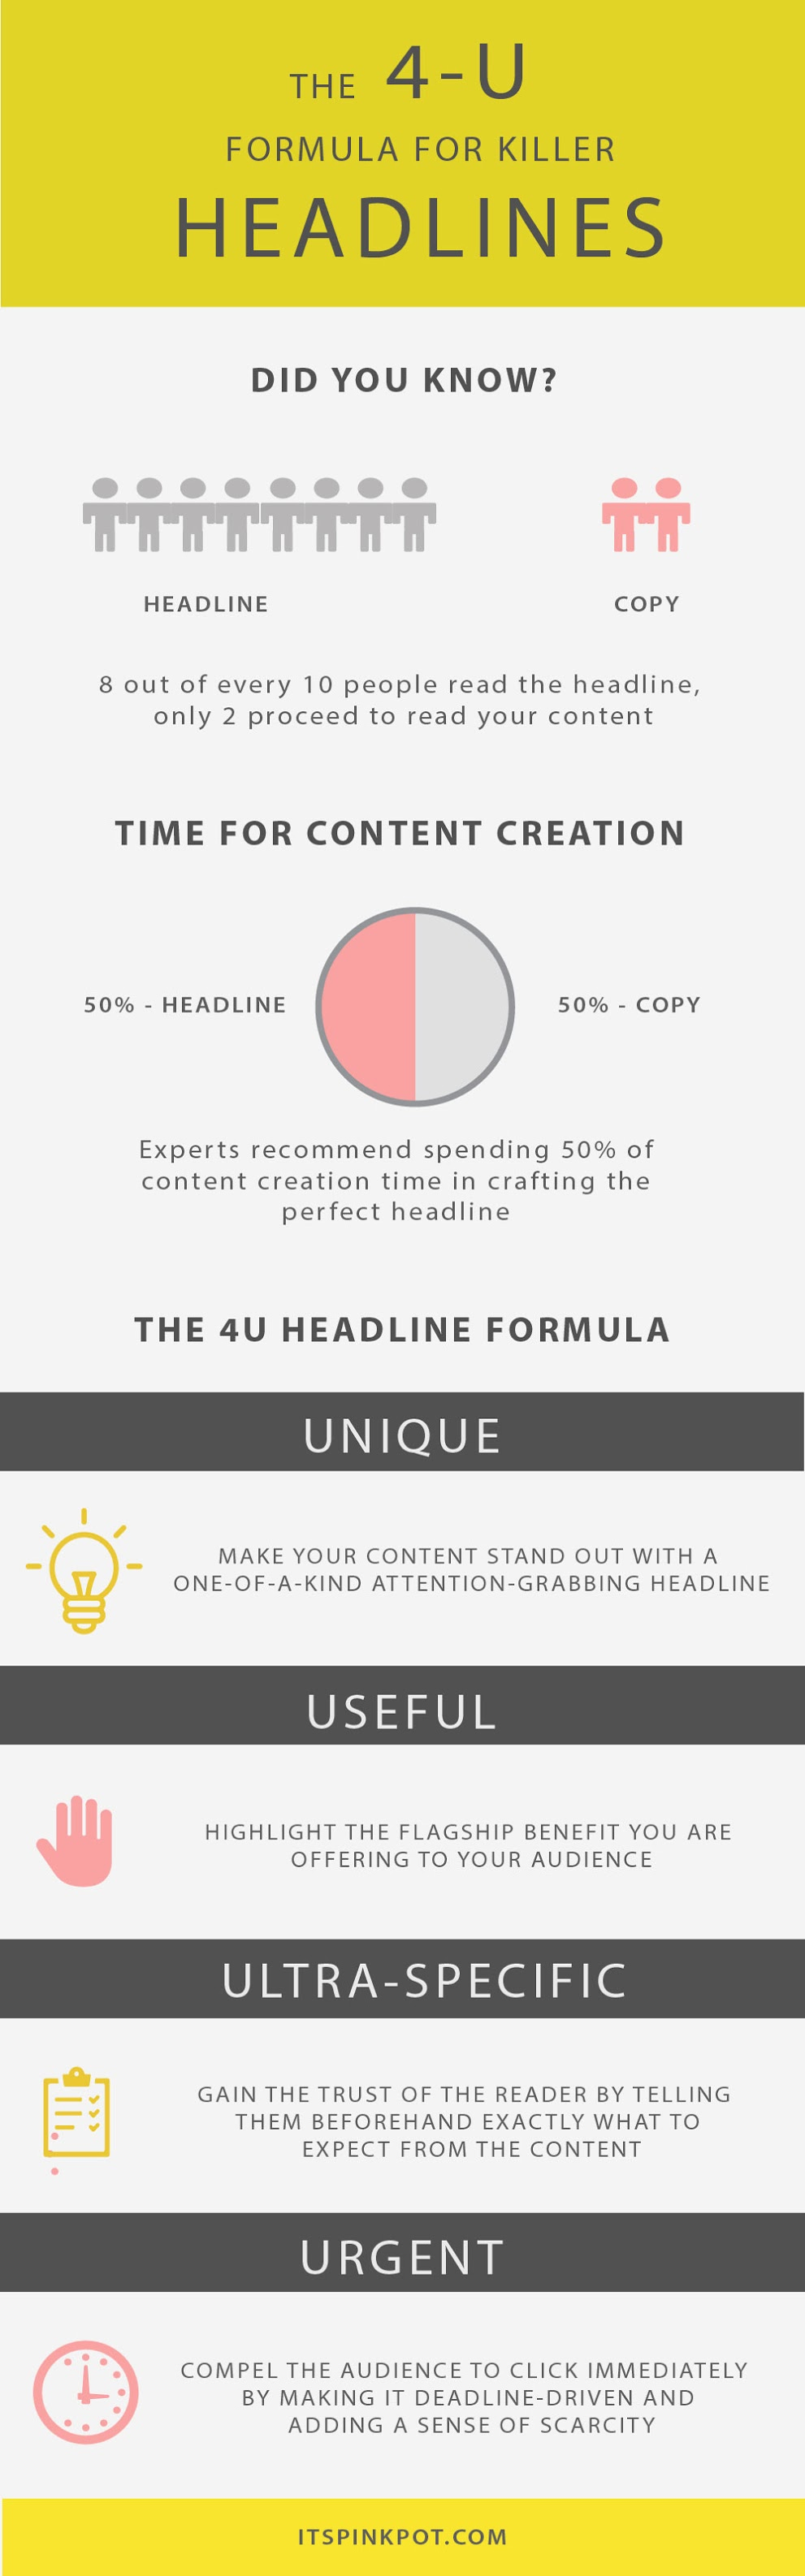 Did you know headlines have a great impact on attracting readers to your content? Check out this killer 4U formula for crafting magnetic headlines + case st